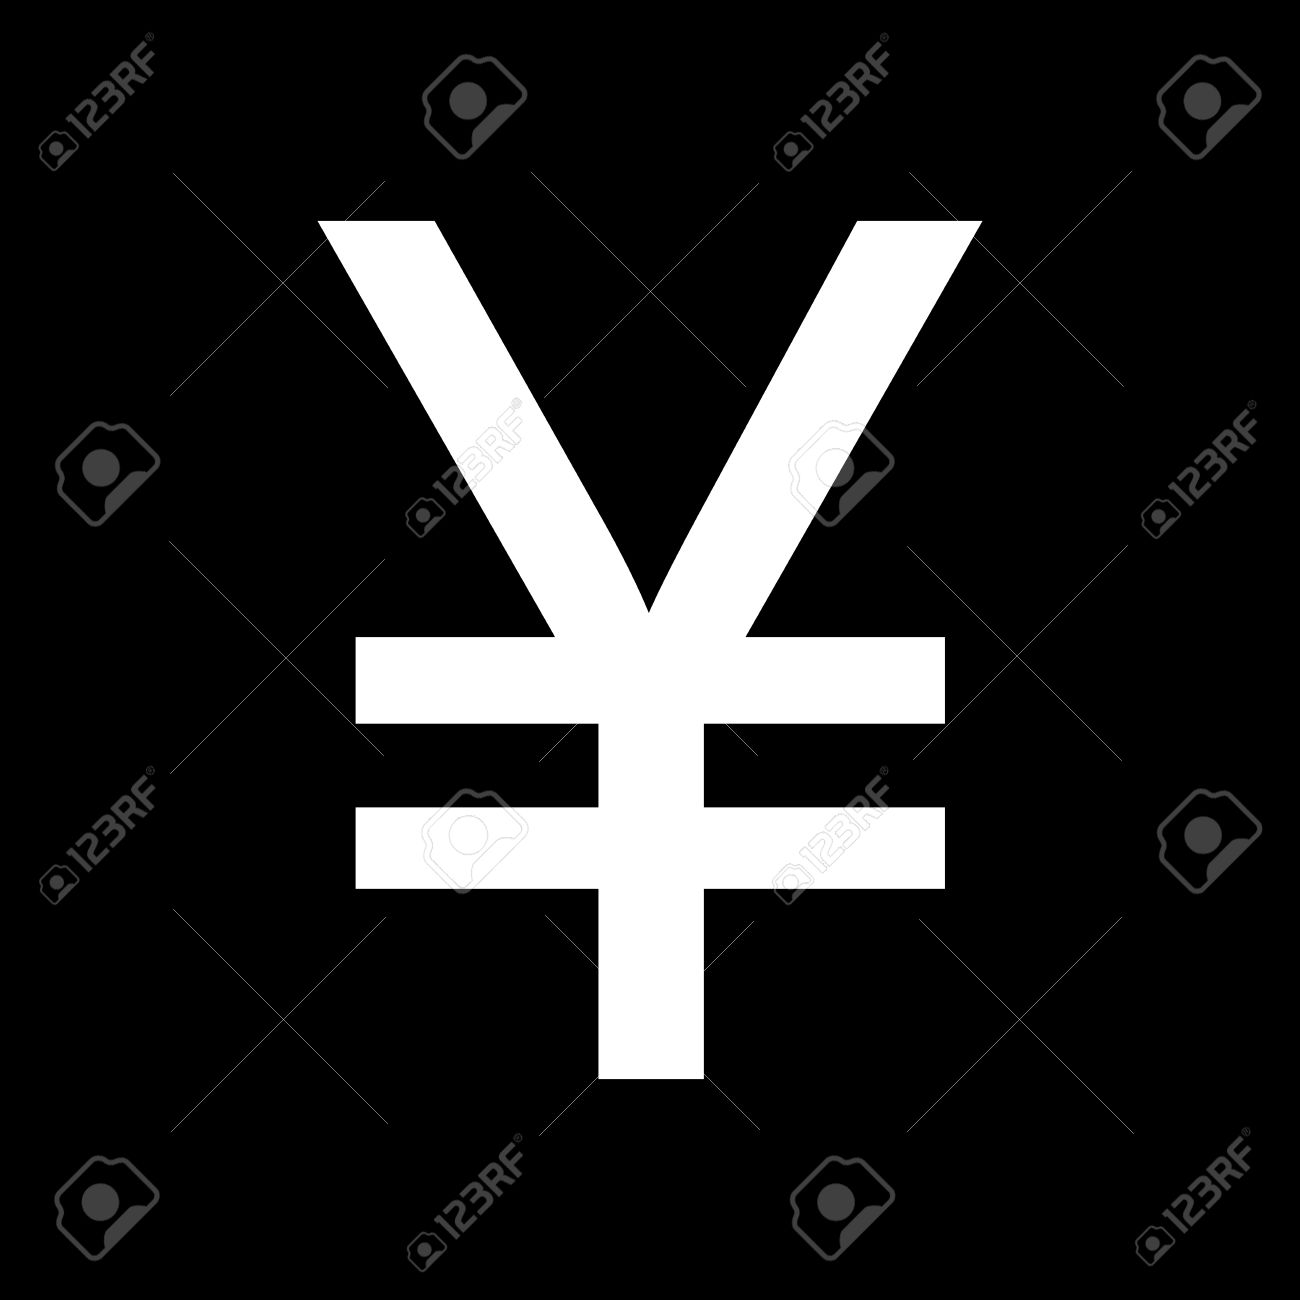 Japanese yen or chinese yuan currency symbol royalty free cliparts japanese yen or chinese yuan currency symbol stock vector 62127595 biocorpaavc Gallery